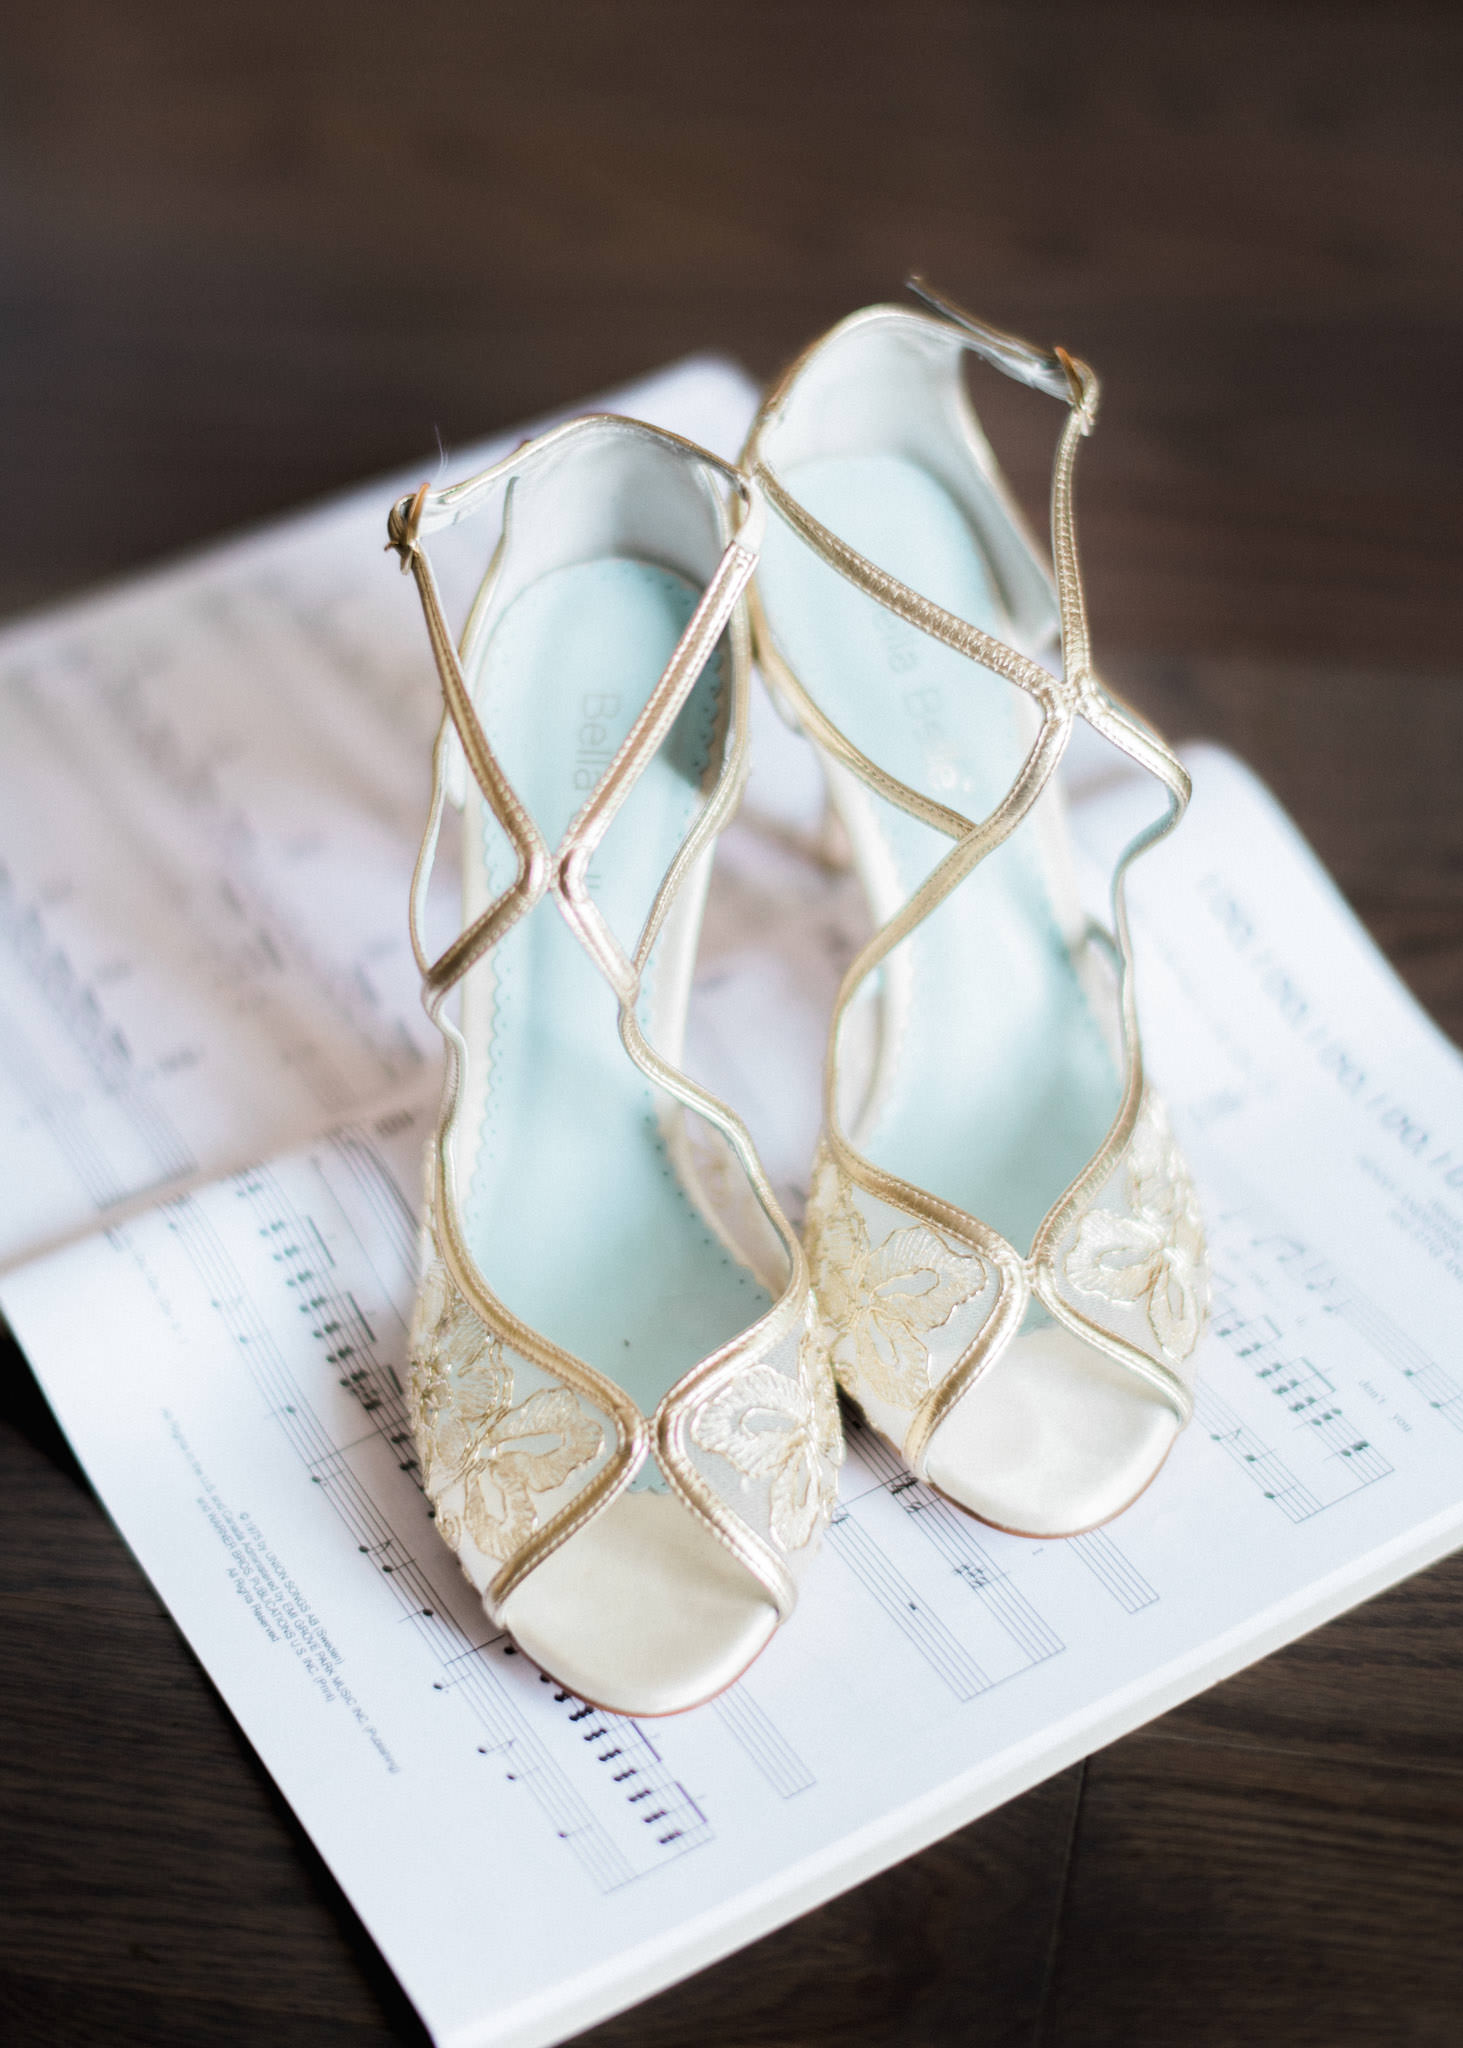 Creative shot of wedding shoes on a music sheet